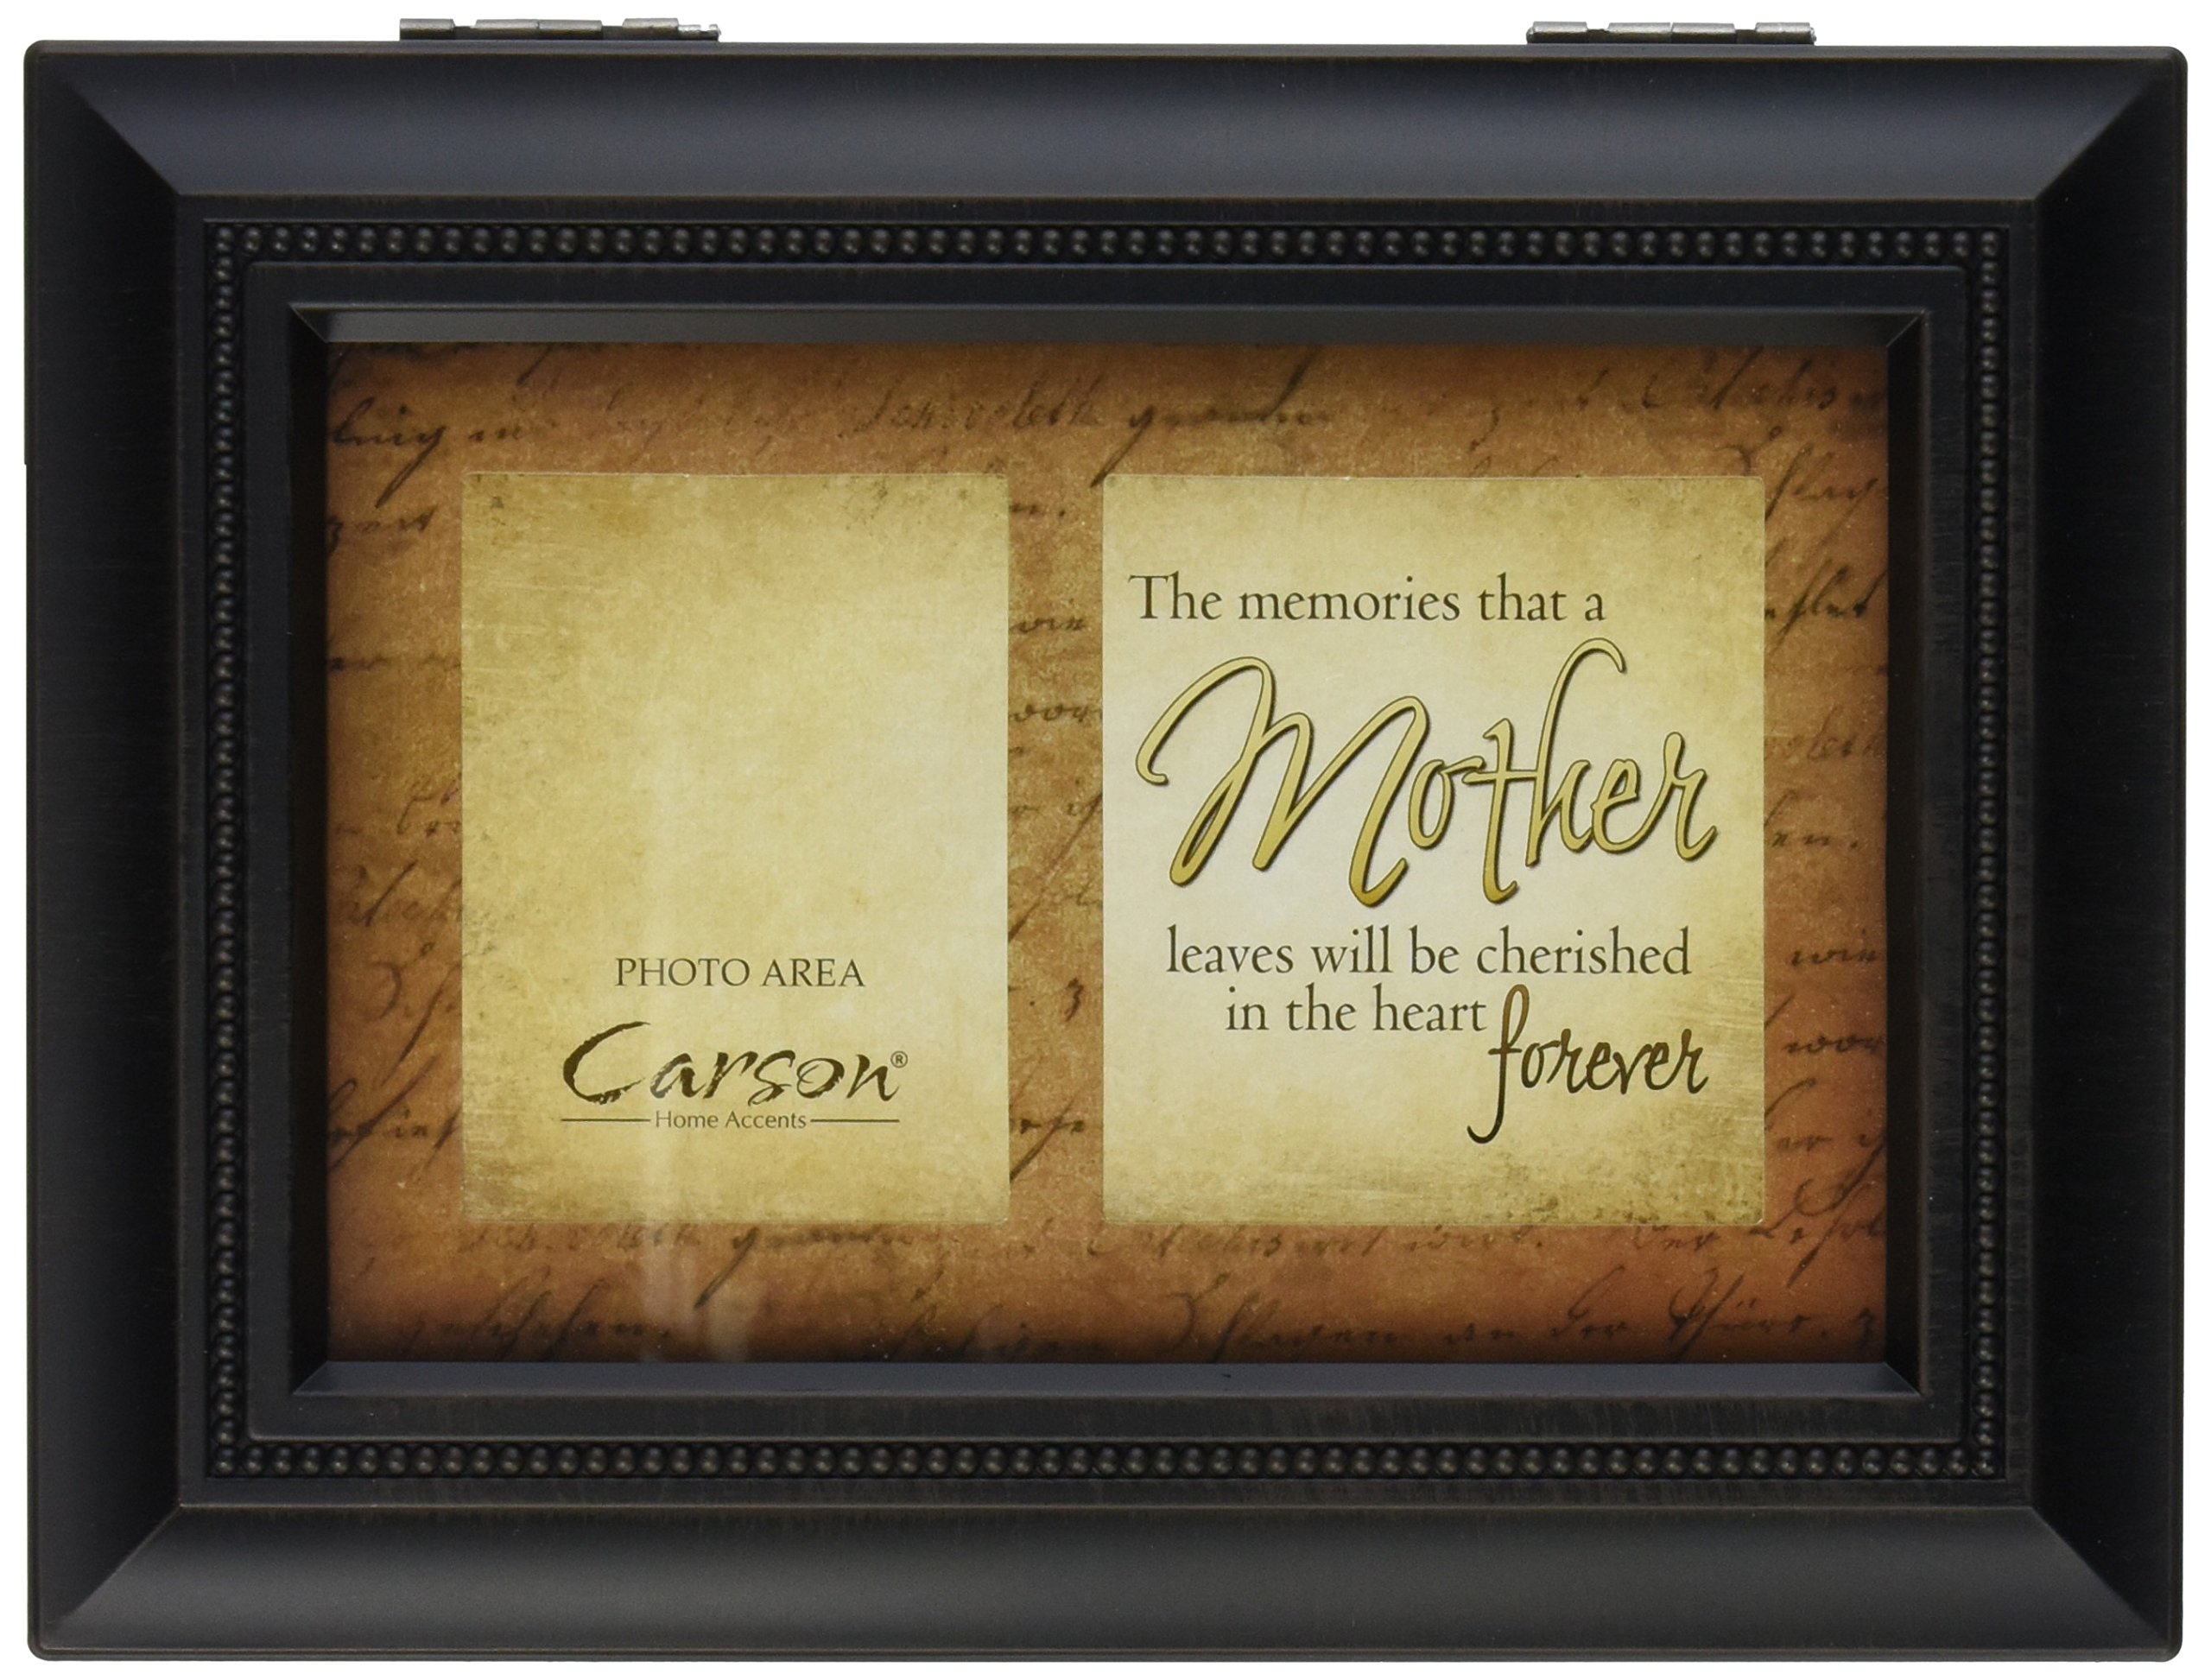 Carson Home Accents 17947 Mother Memories Bereavement Music Box, 8-Inch by 6-Inch by 2-3/4-Inch